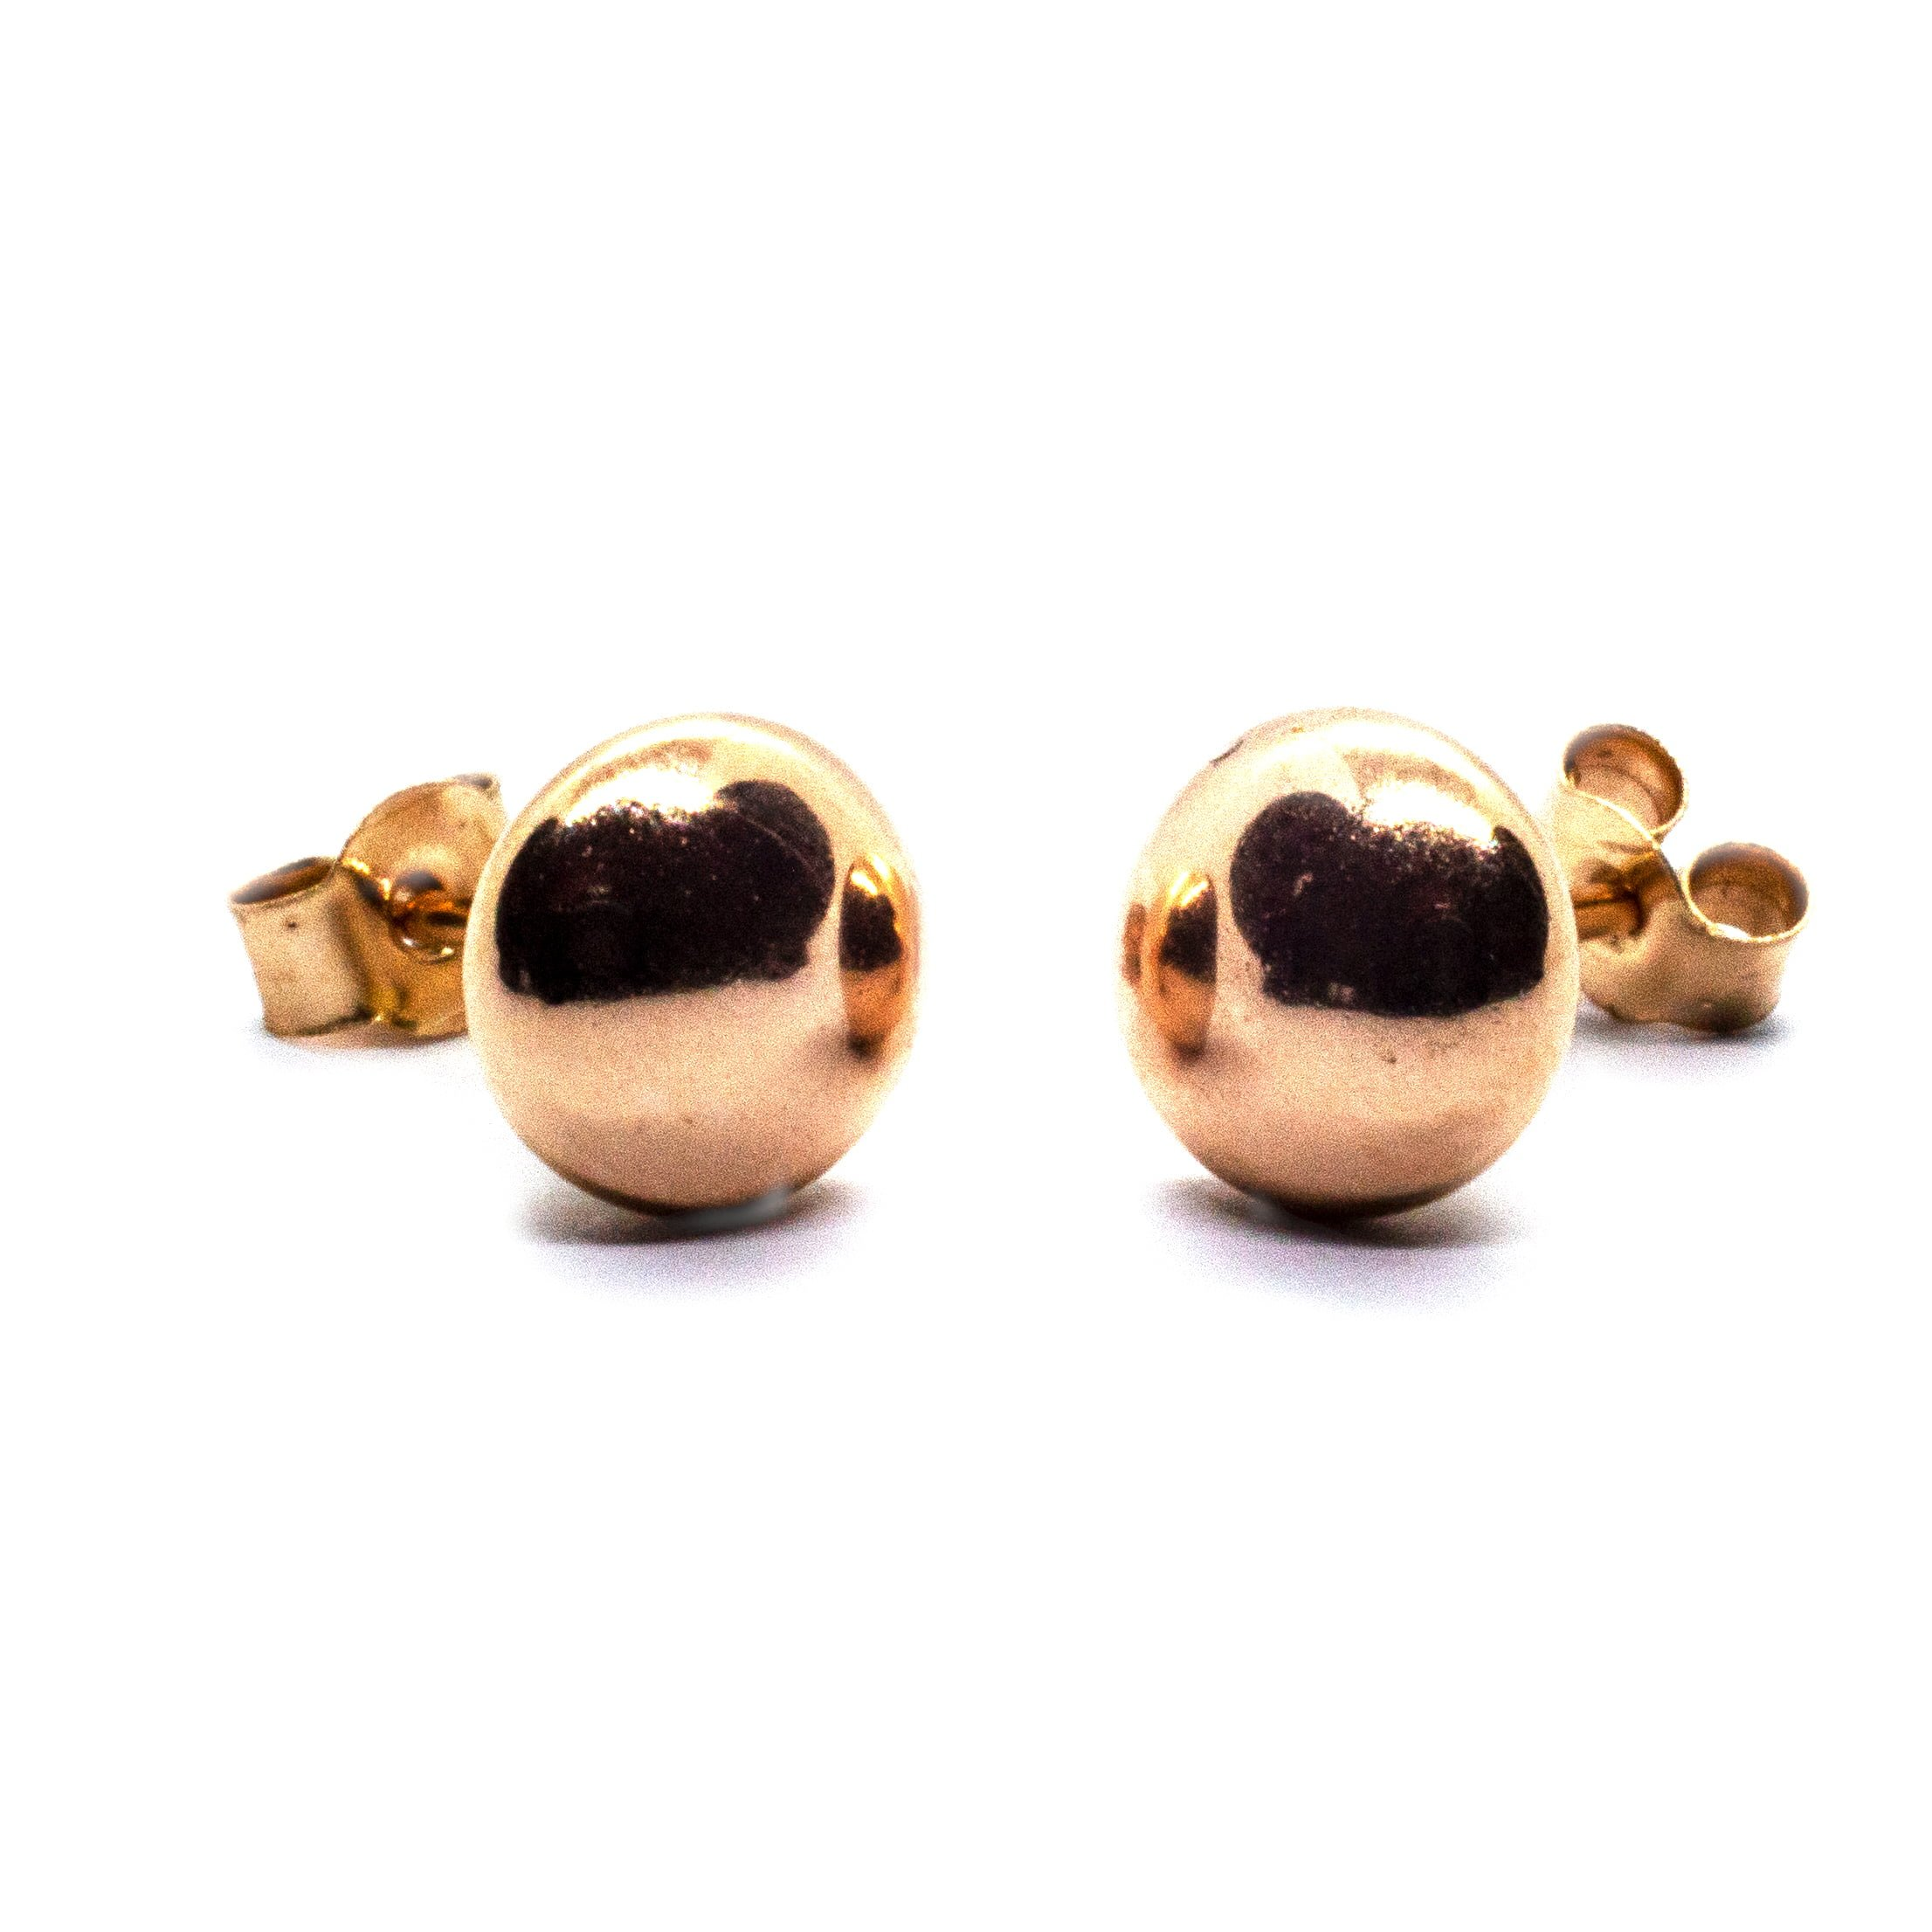 5mm yellow gold bouton earrings